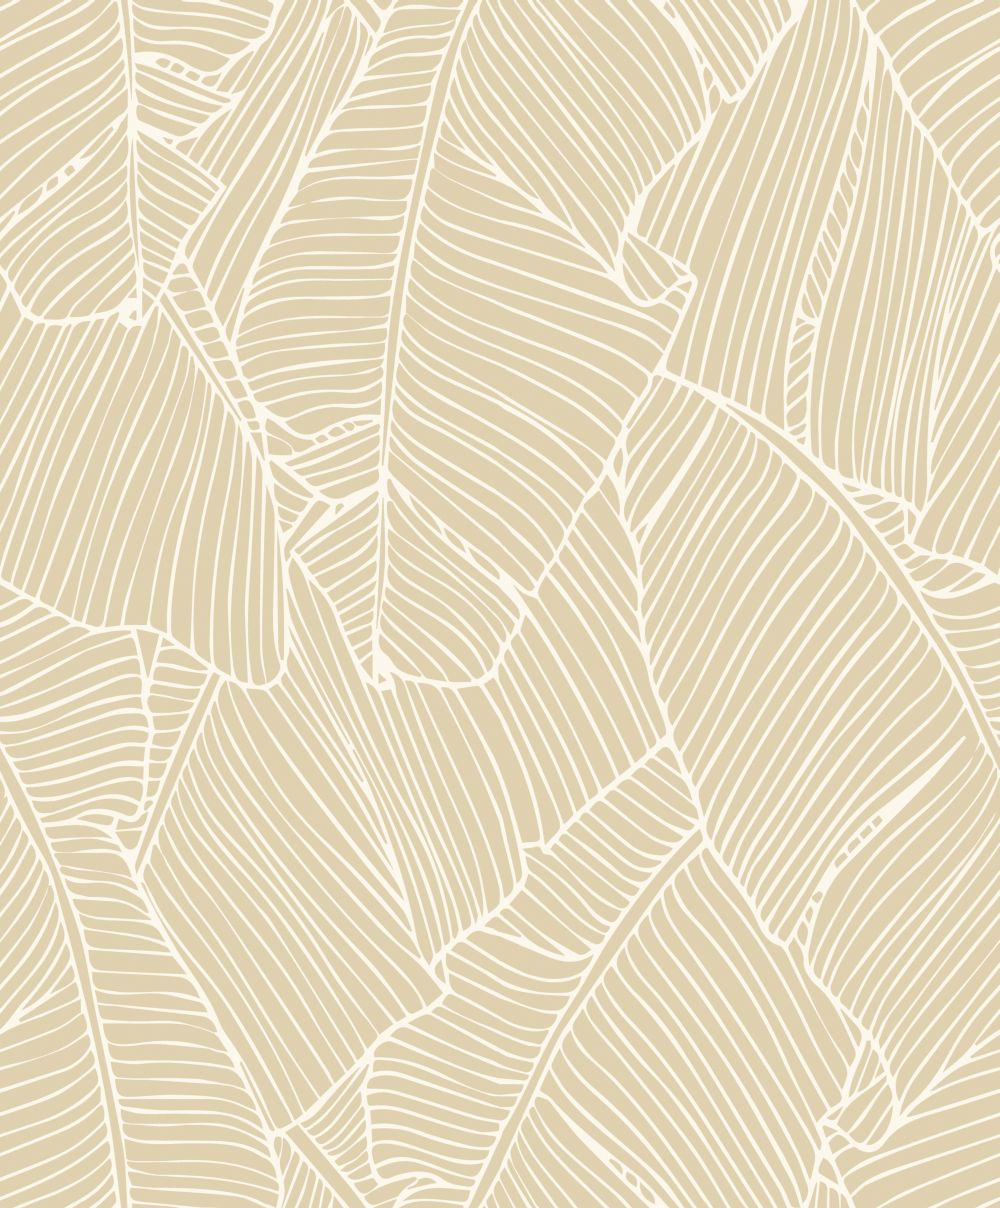 Metallic Gold Wallpaper Exotic Palms By Galerie Metallic Gold Na3302